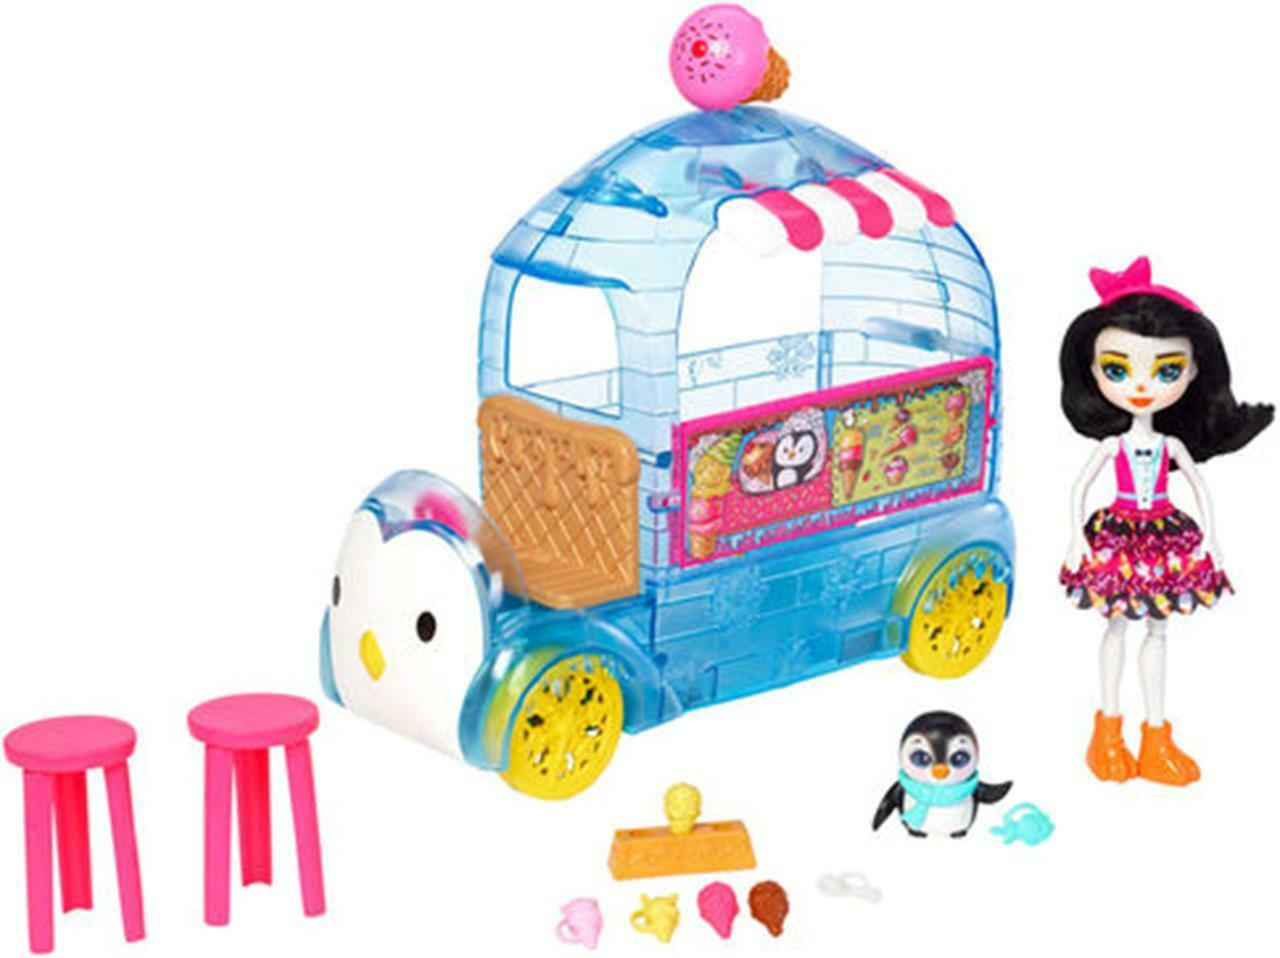 Enchantimals Frozen Treats Icecream Van-Tracked Lieferung Lieferung Lieferung 207cb8